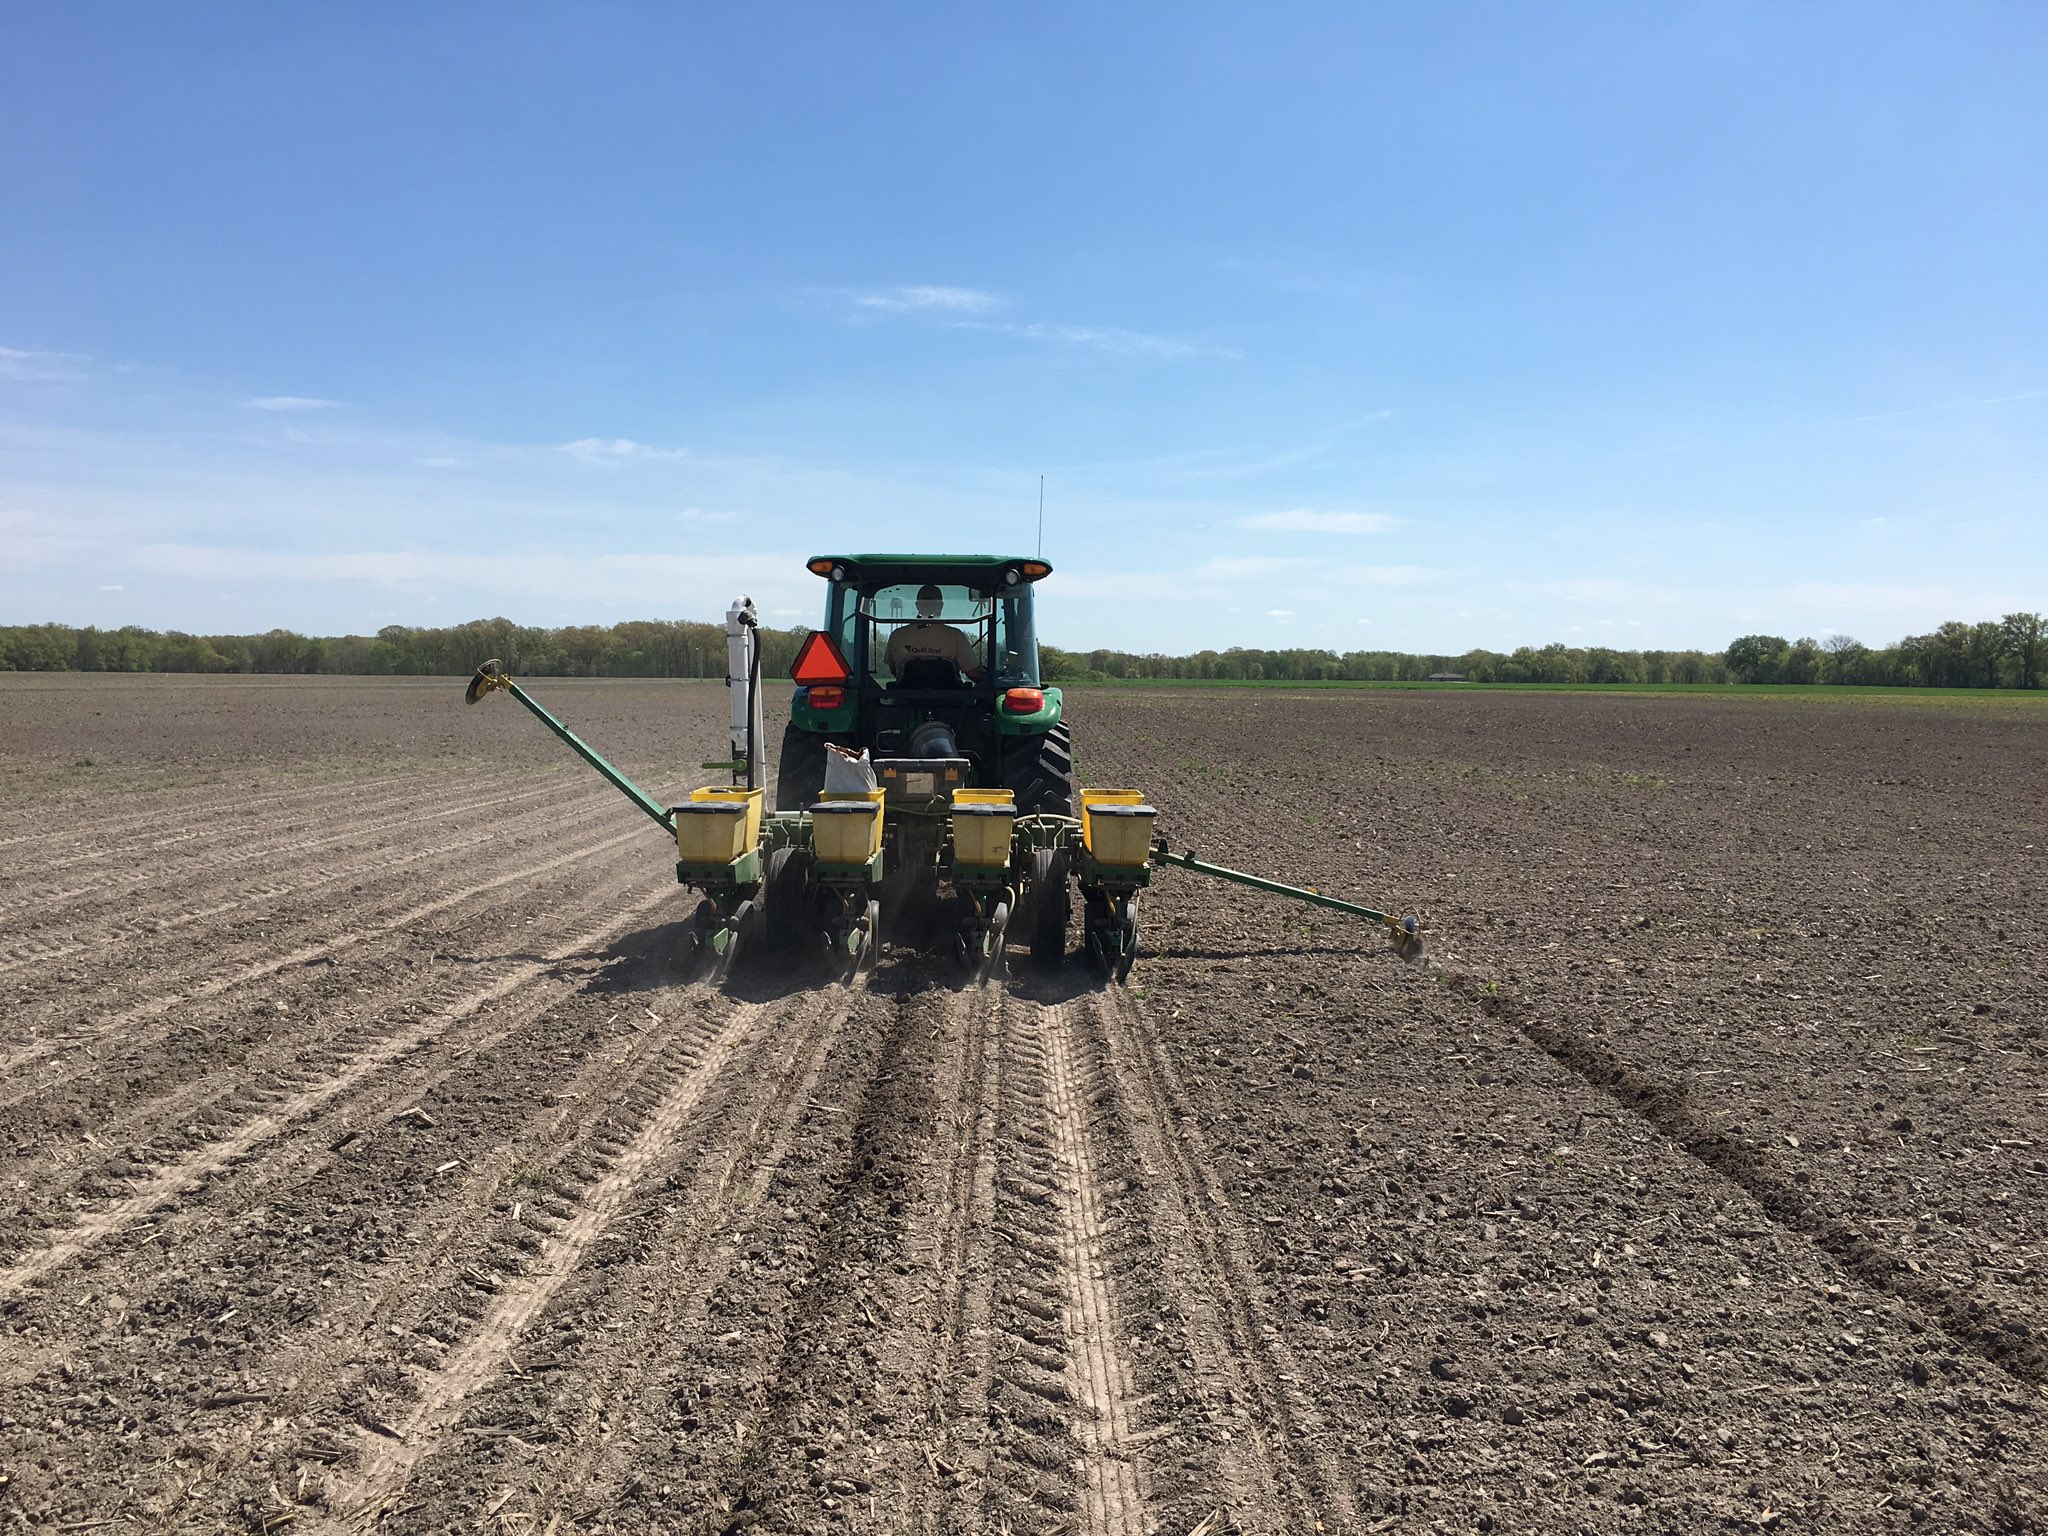 This agronomic photo shows planting demonstration plots for the Grow More Experience site.